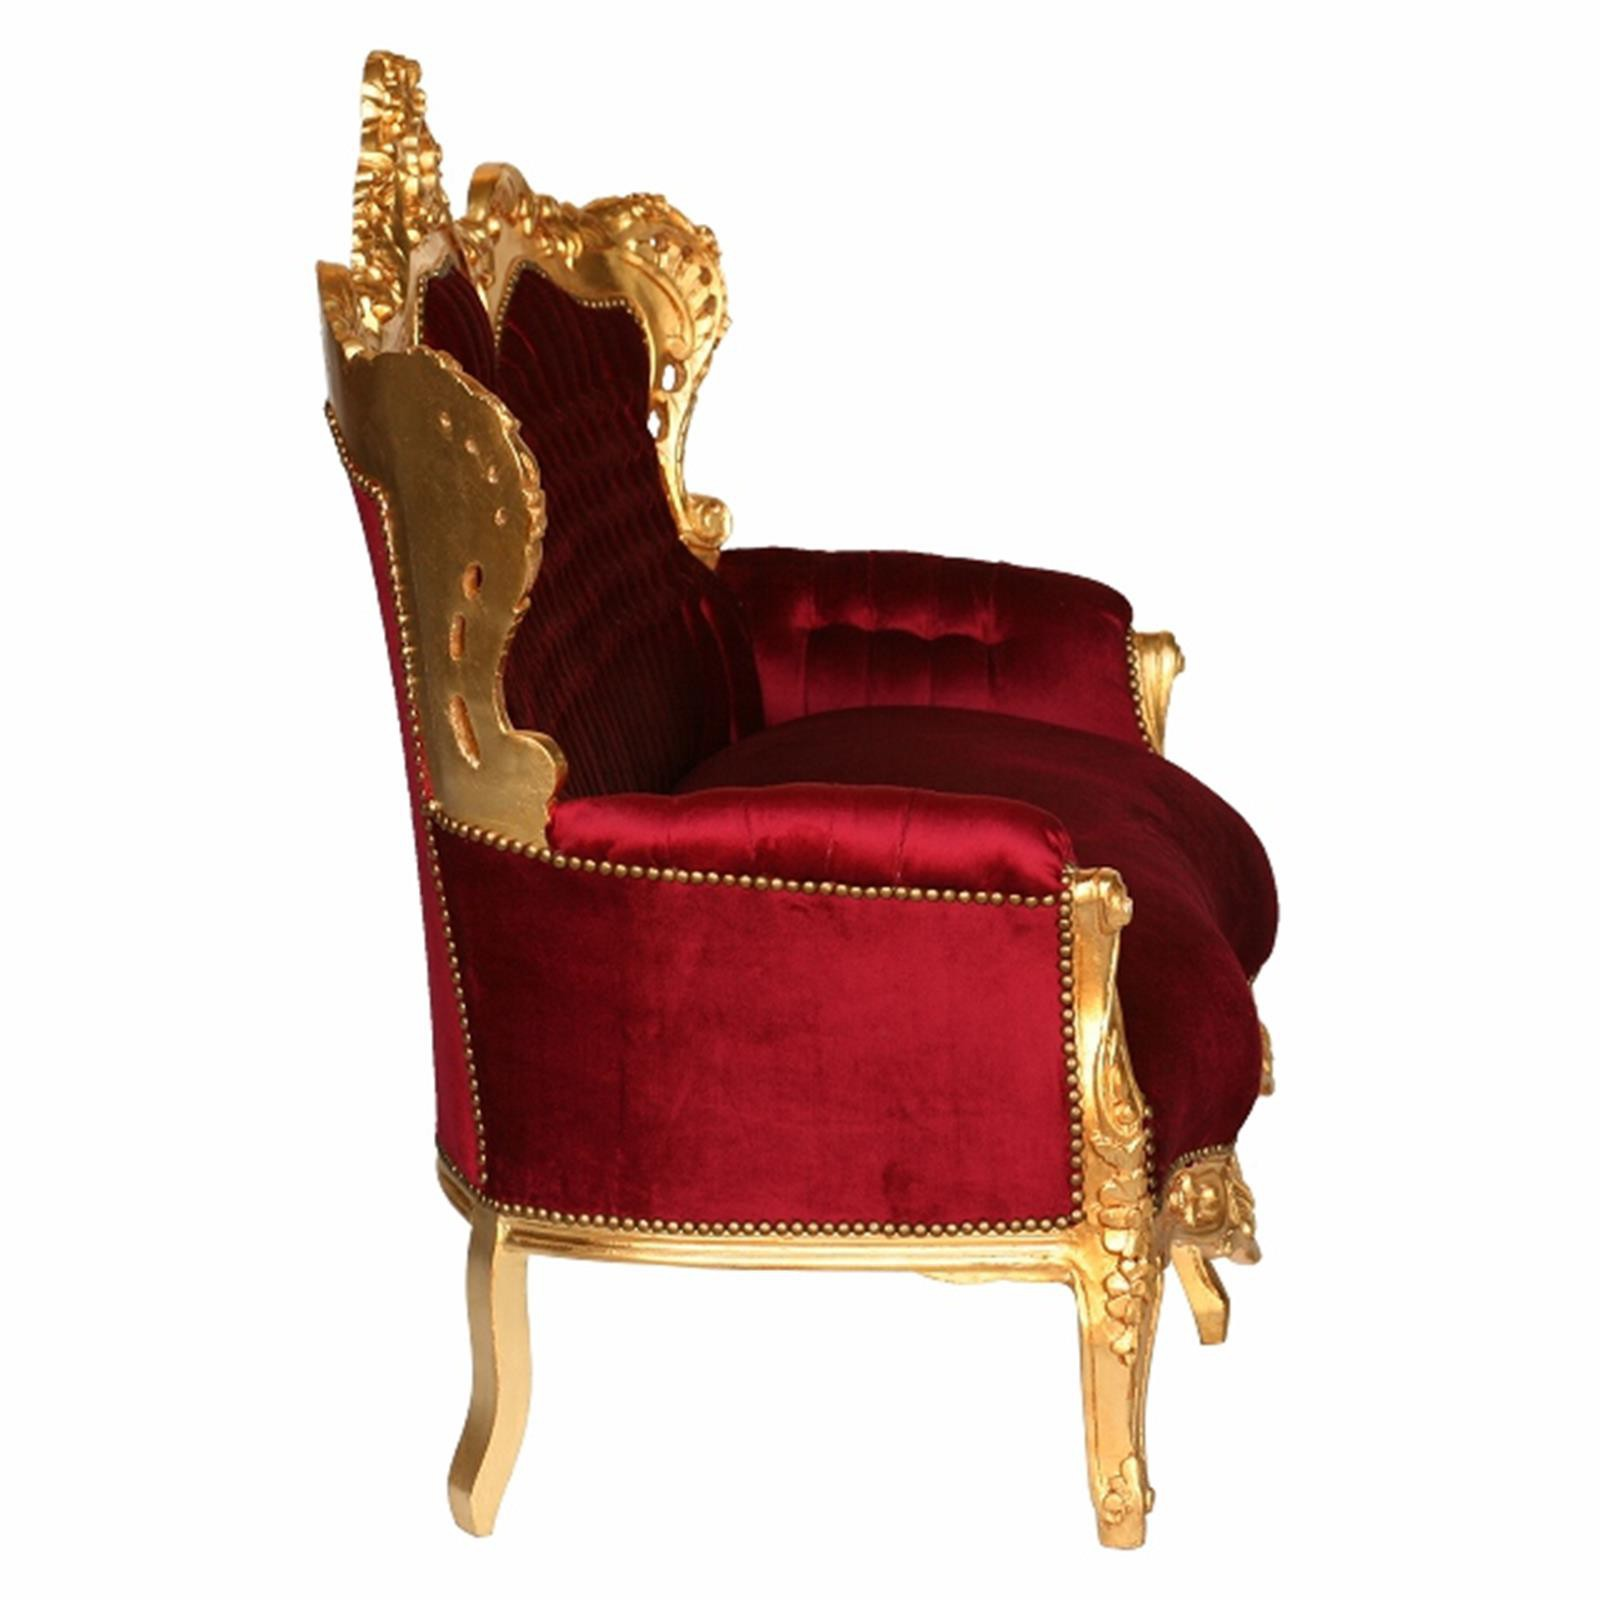 big sofa barock 3 sitzer couch bordeaux rot gold exklusiv. Black Bedroom Furniture Sets. Home Design Ideas